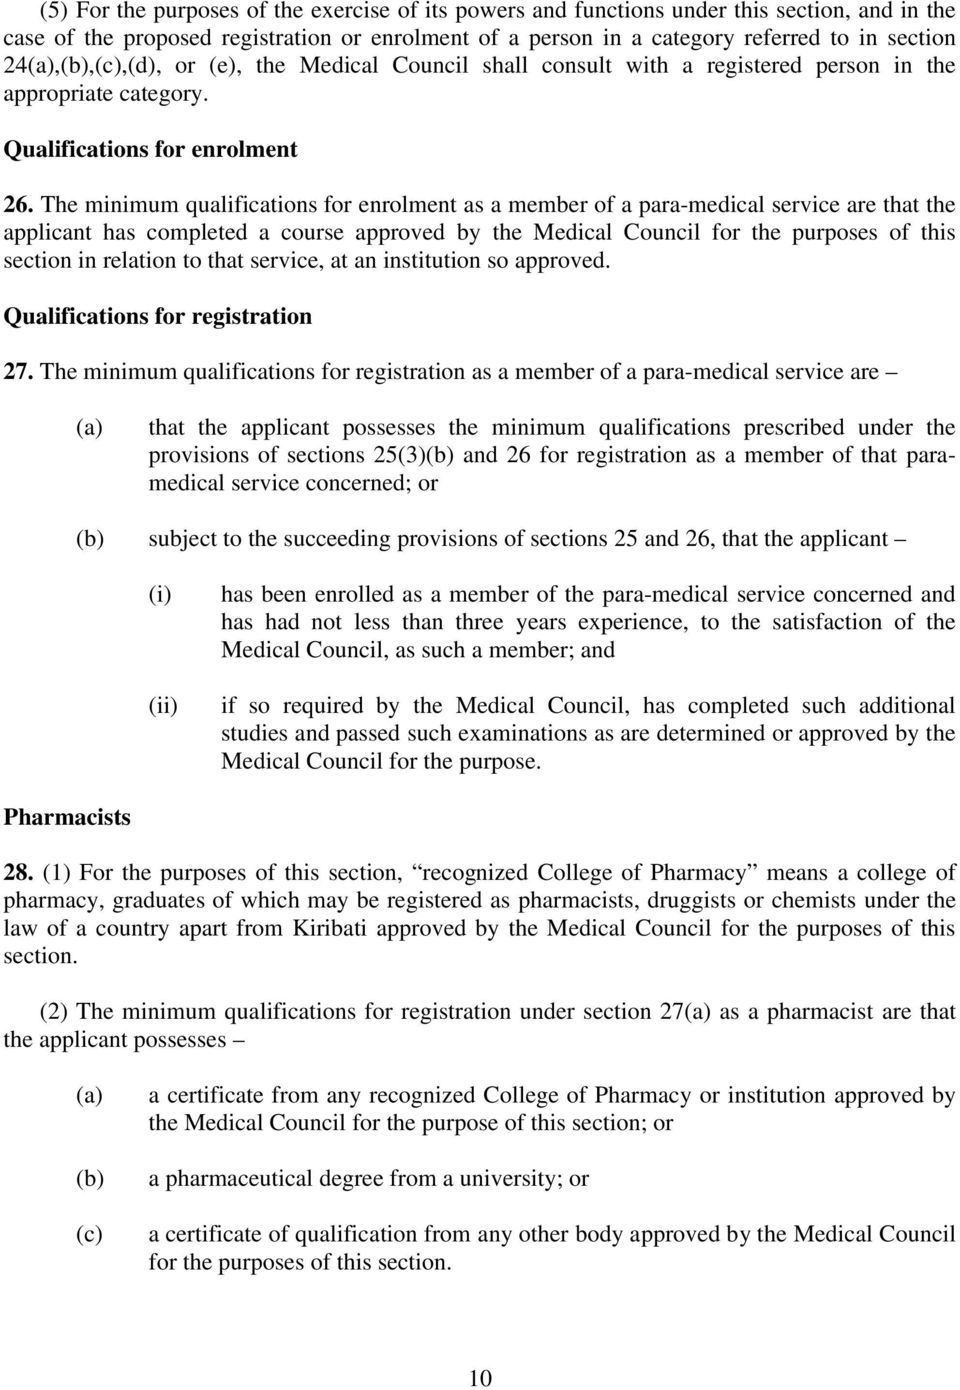 The minimum qualifications for enrolment as a member of a para-medical service are that the applicant has completed a course approved by the Medical Council for the purposes of this section in